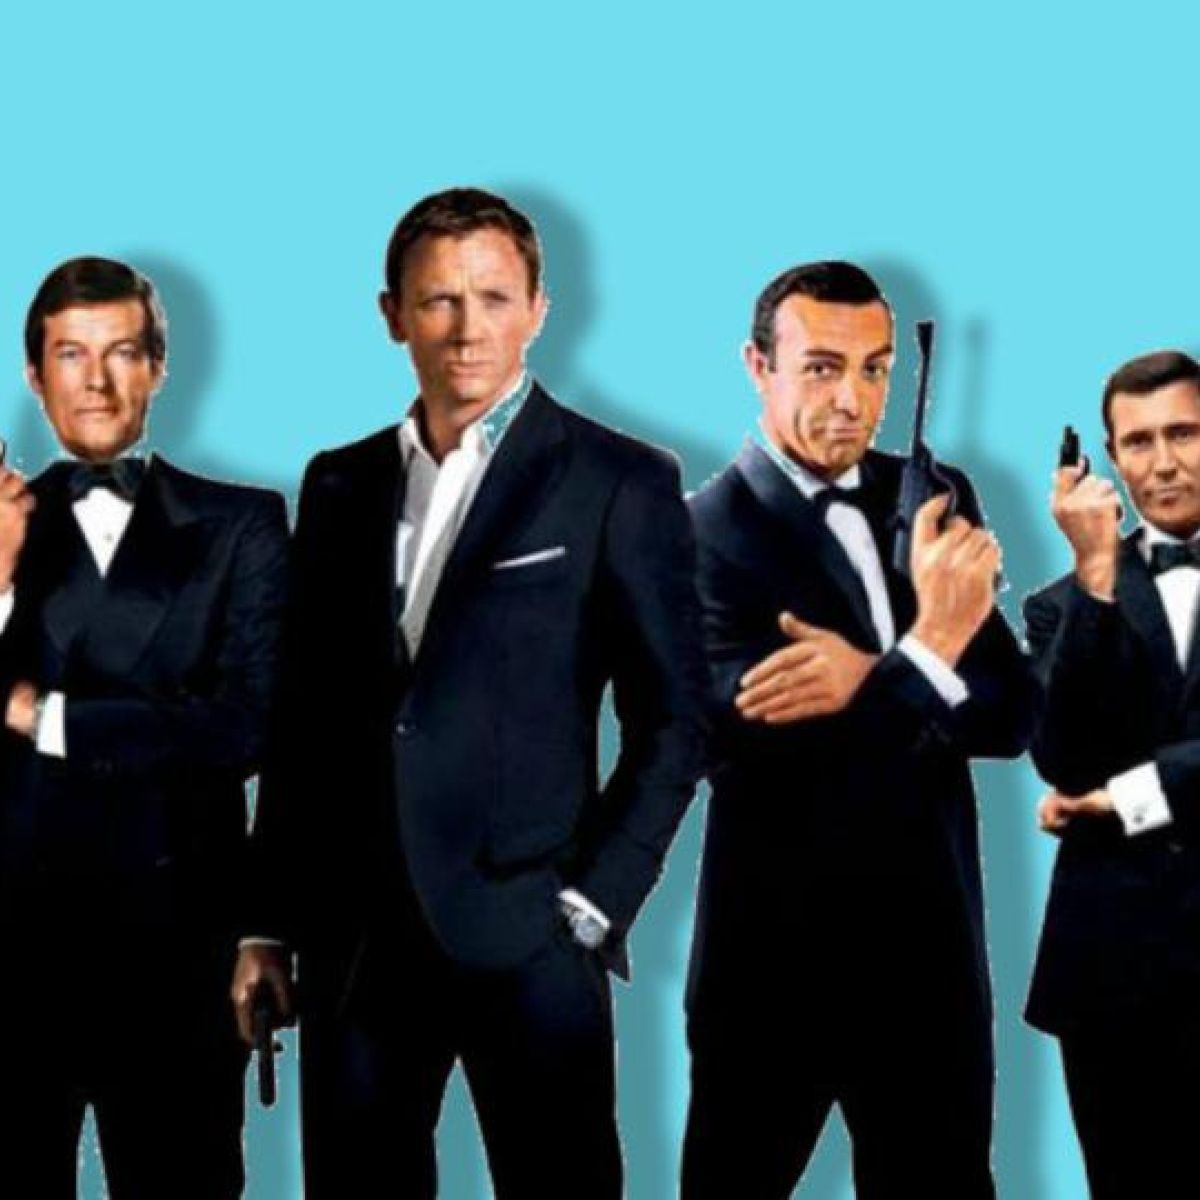 James Bond 007 S Best And Worst Movies Ranked